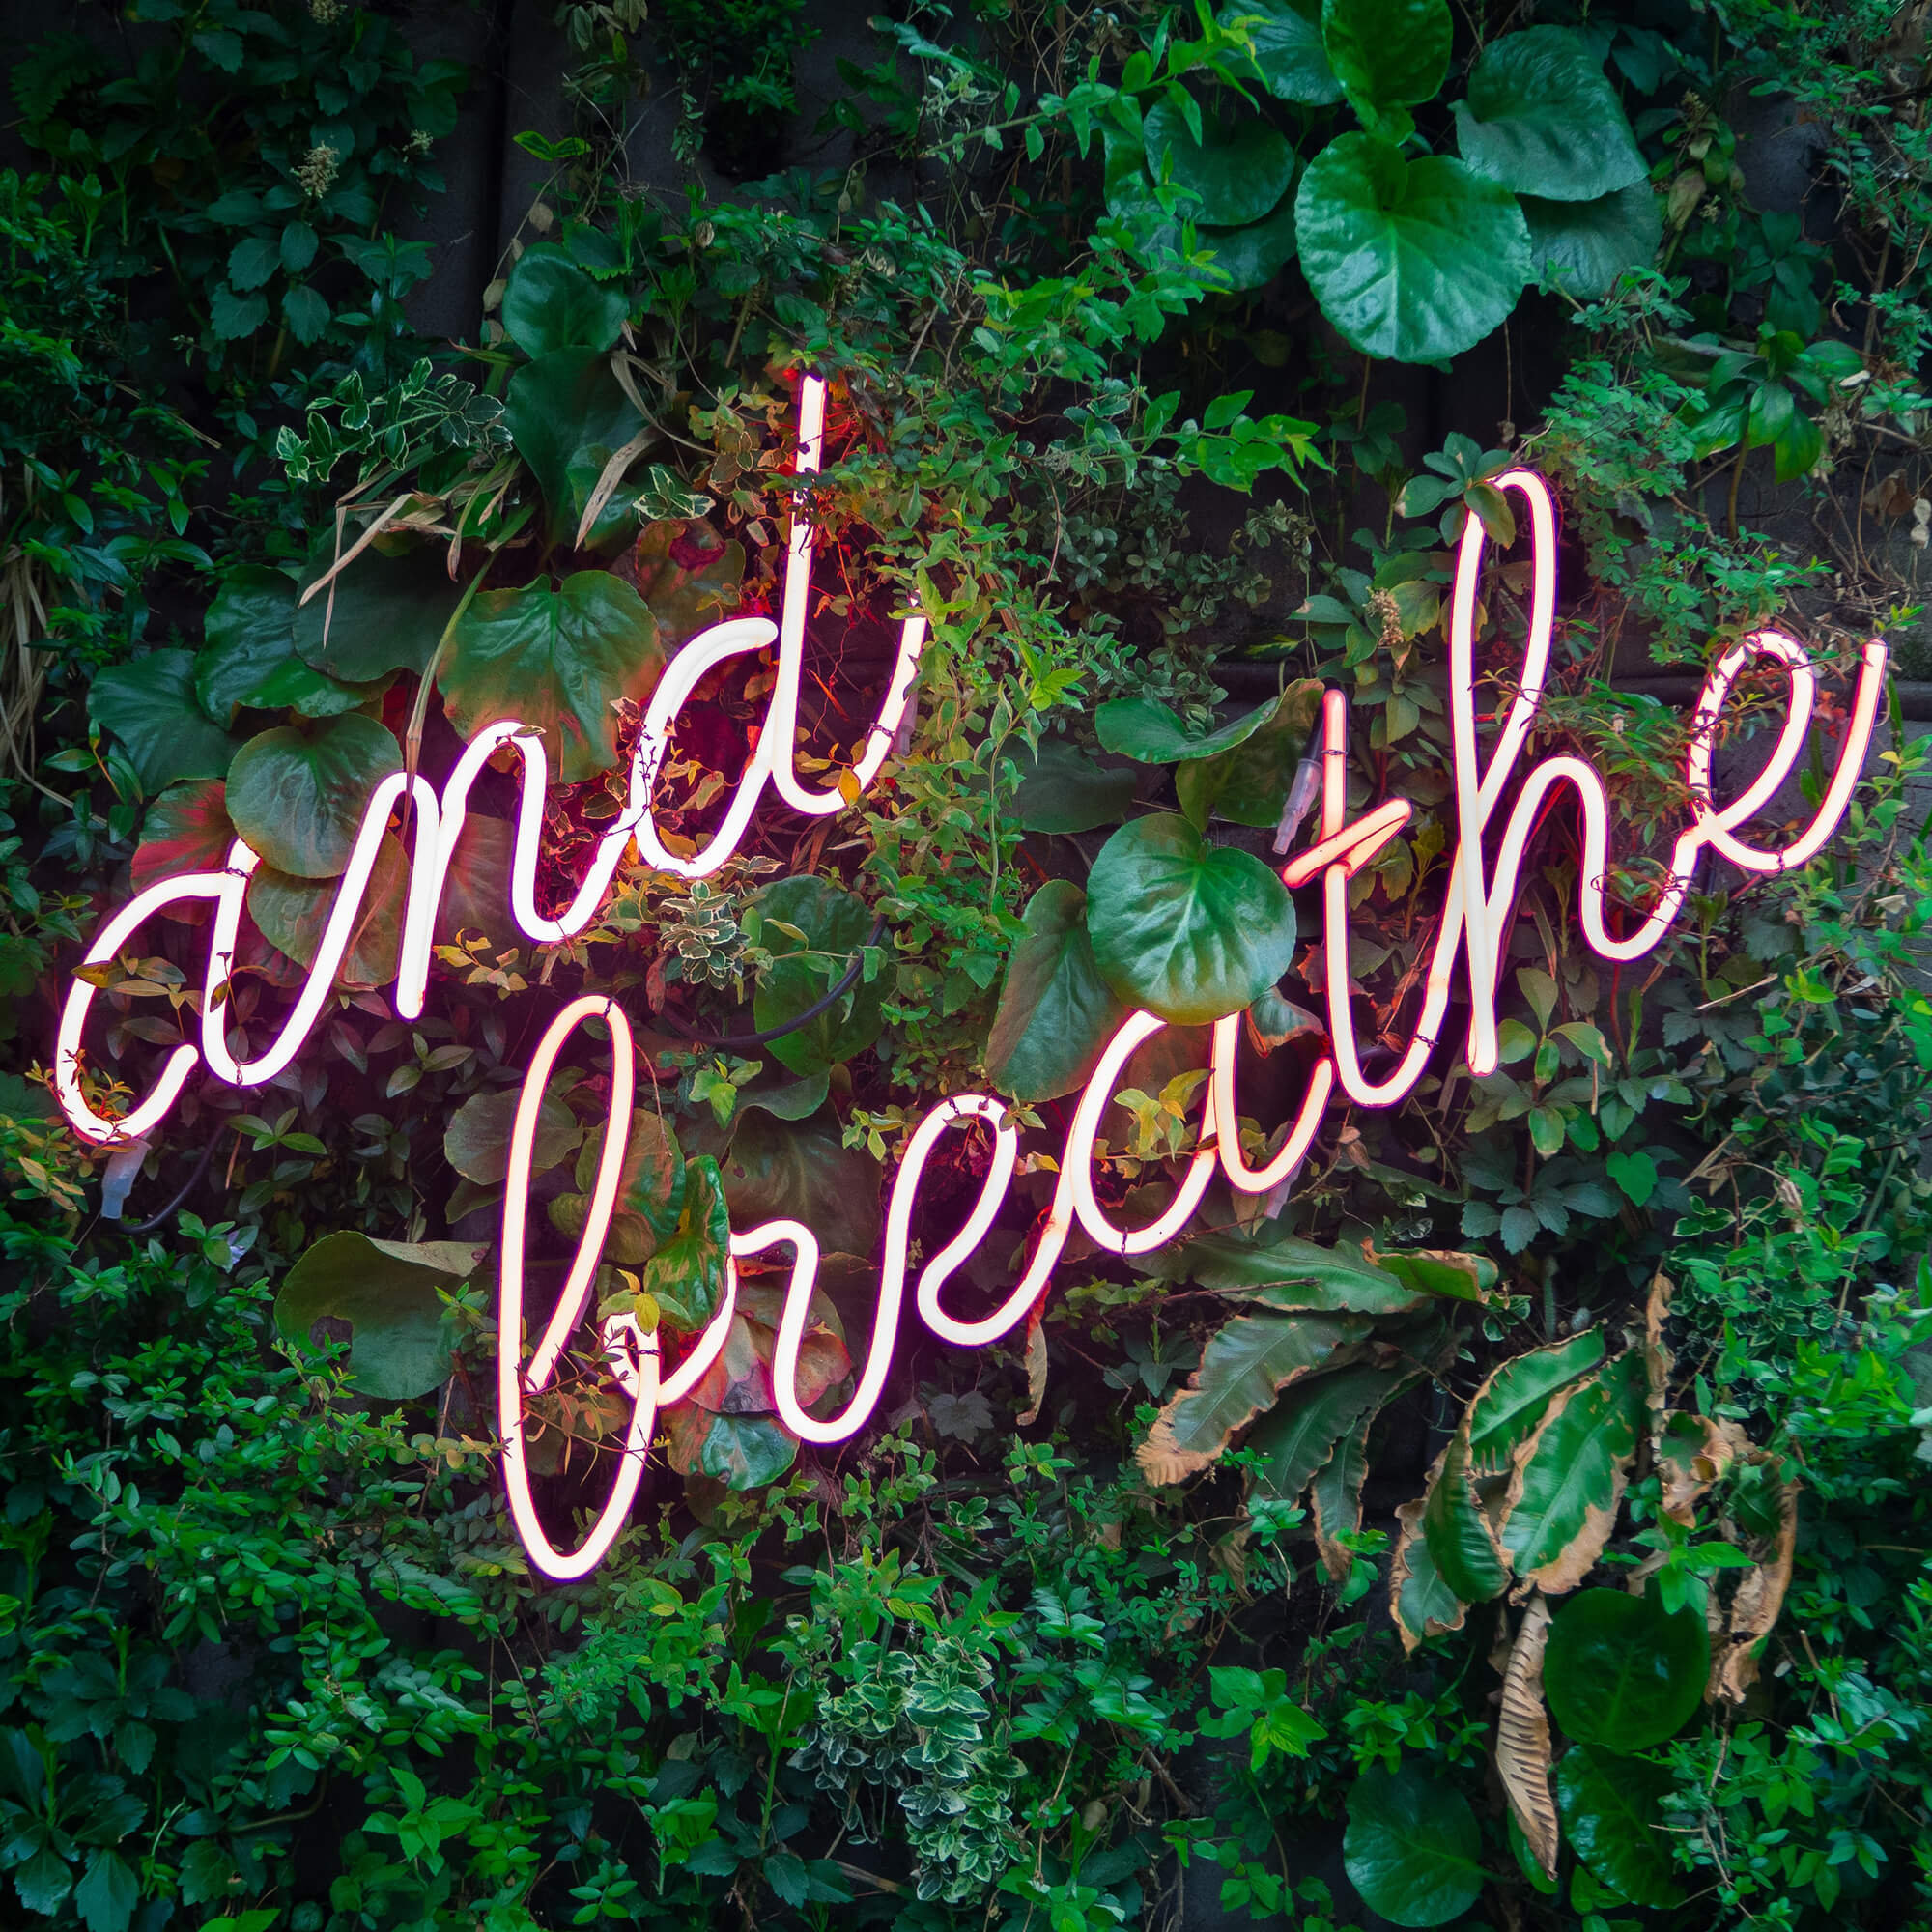 A pink neon sign that says 'and breathe' mounted in greenery